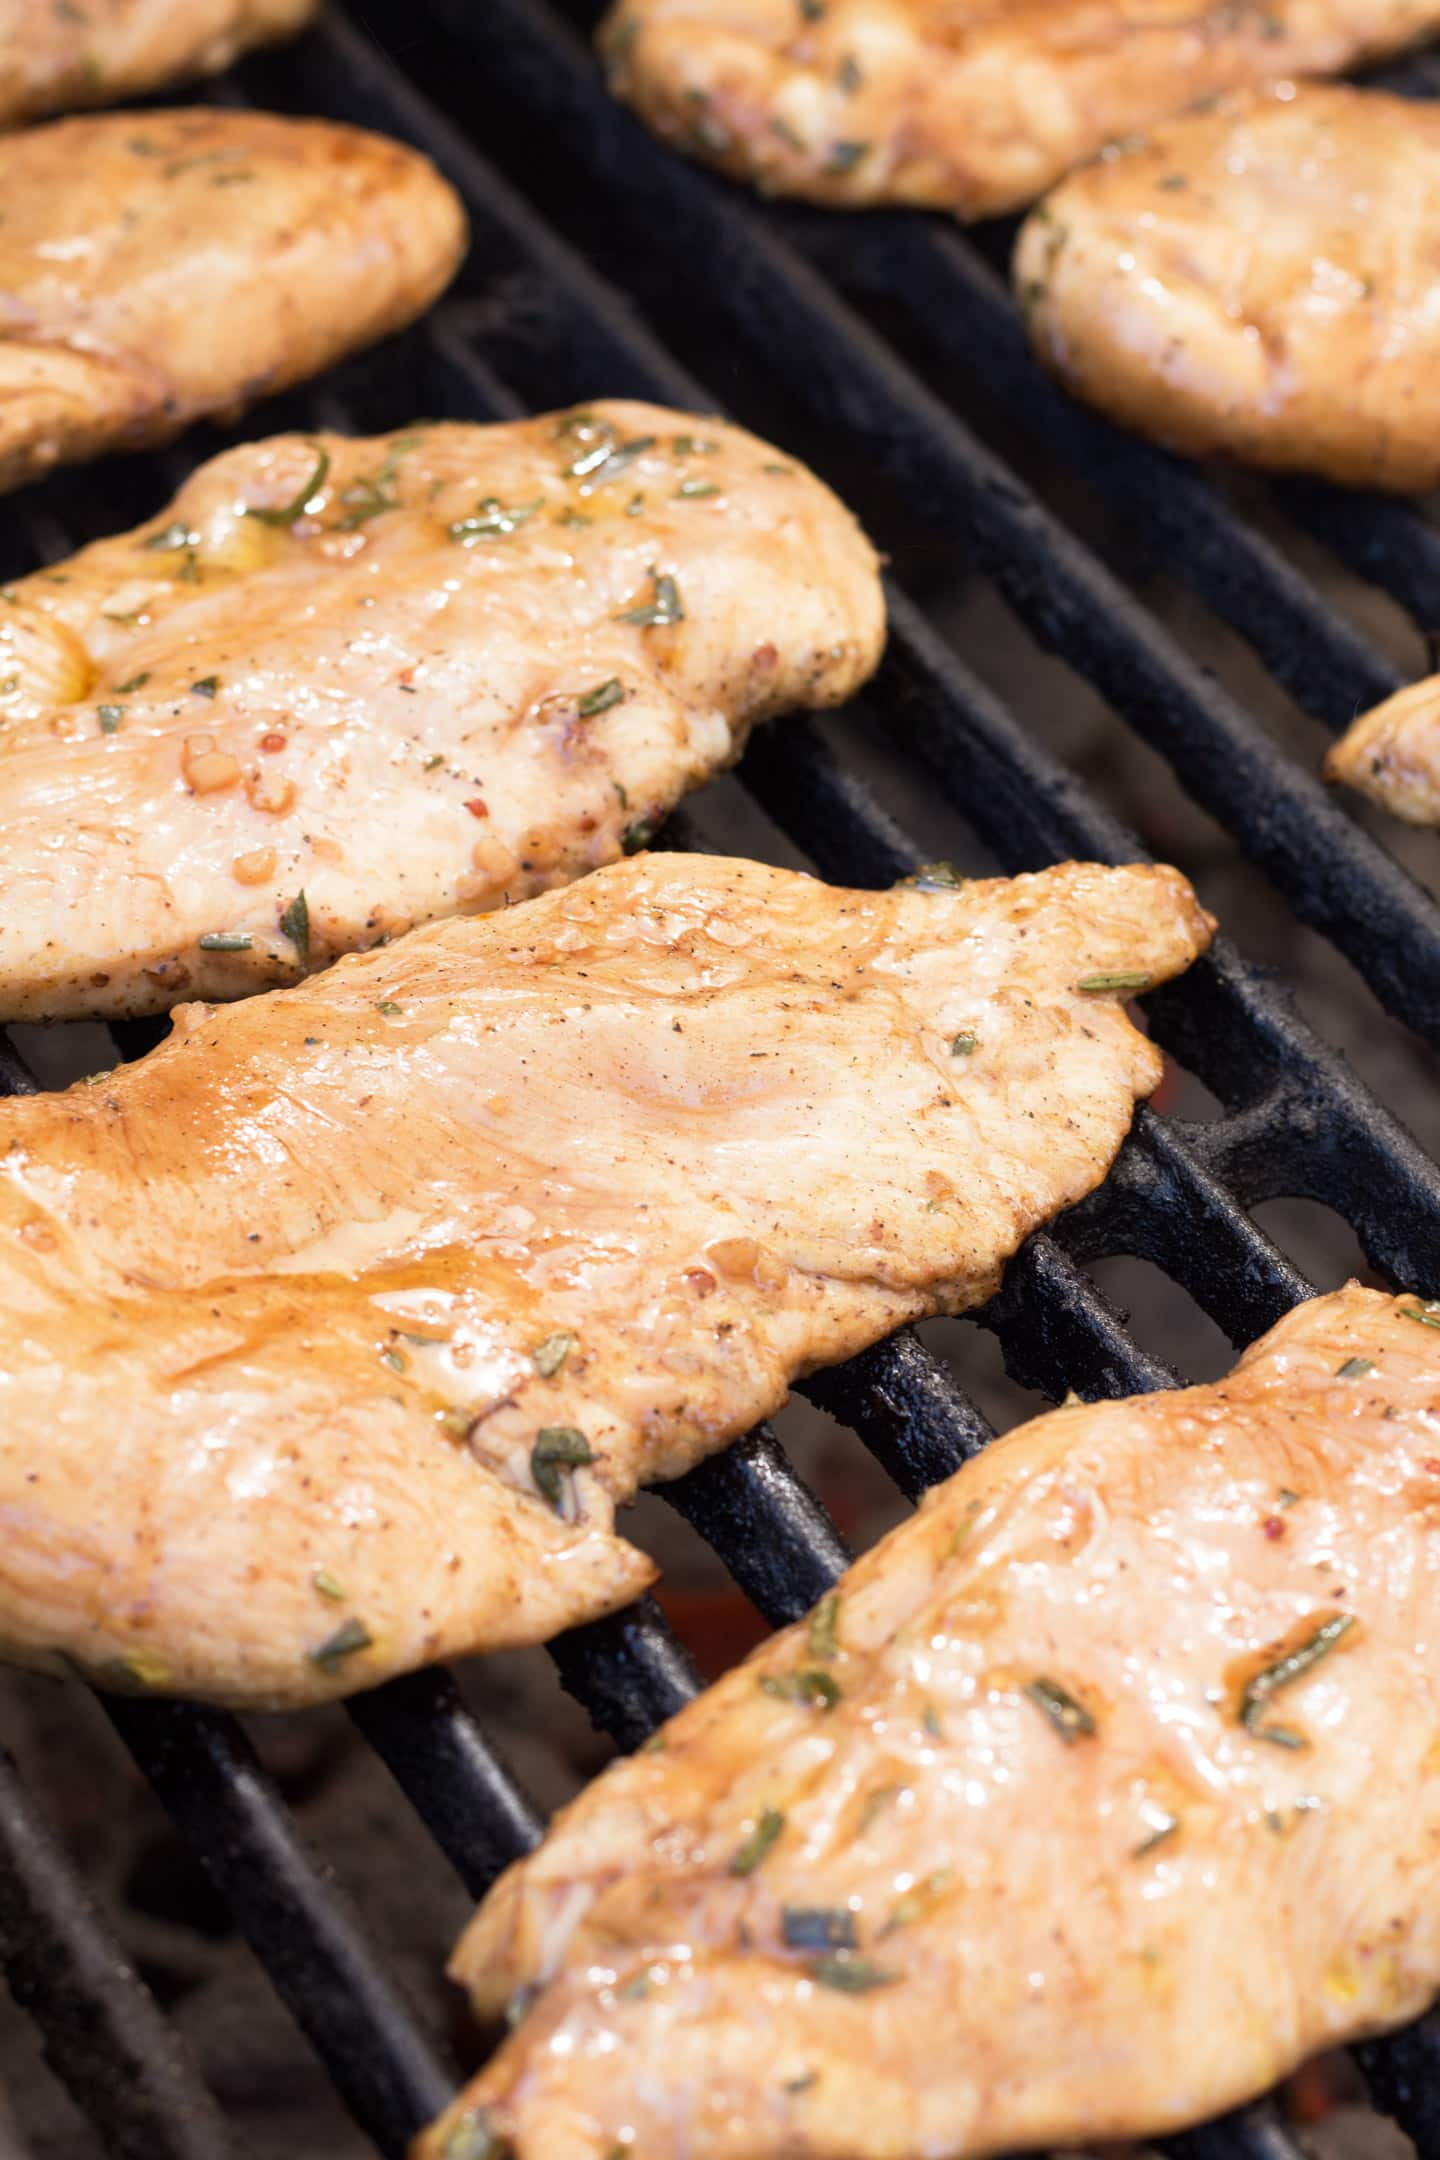 Chicken on grill.